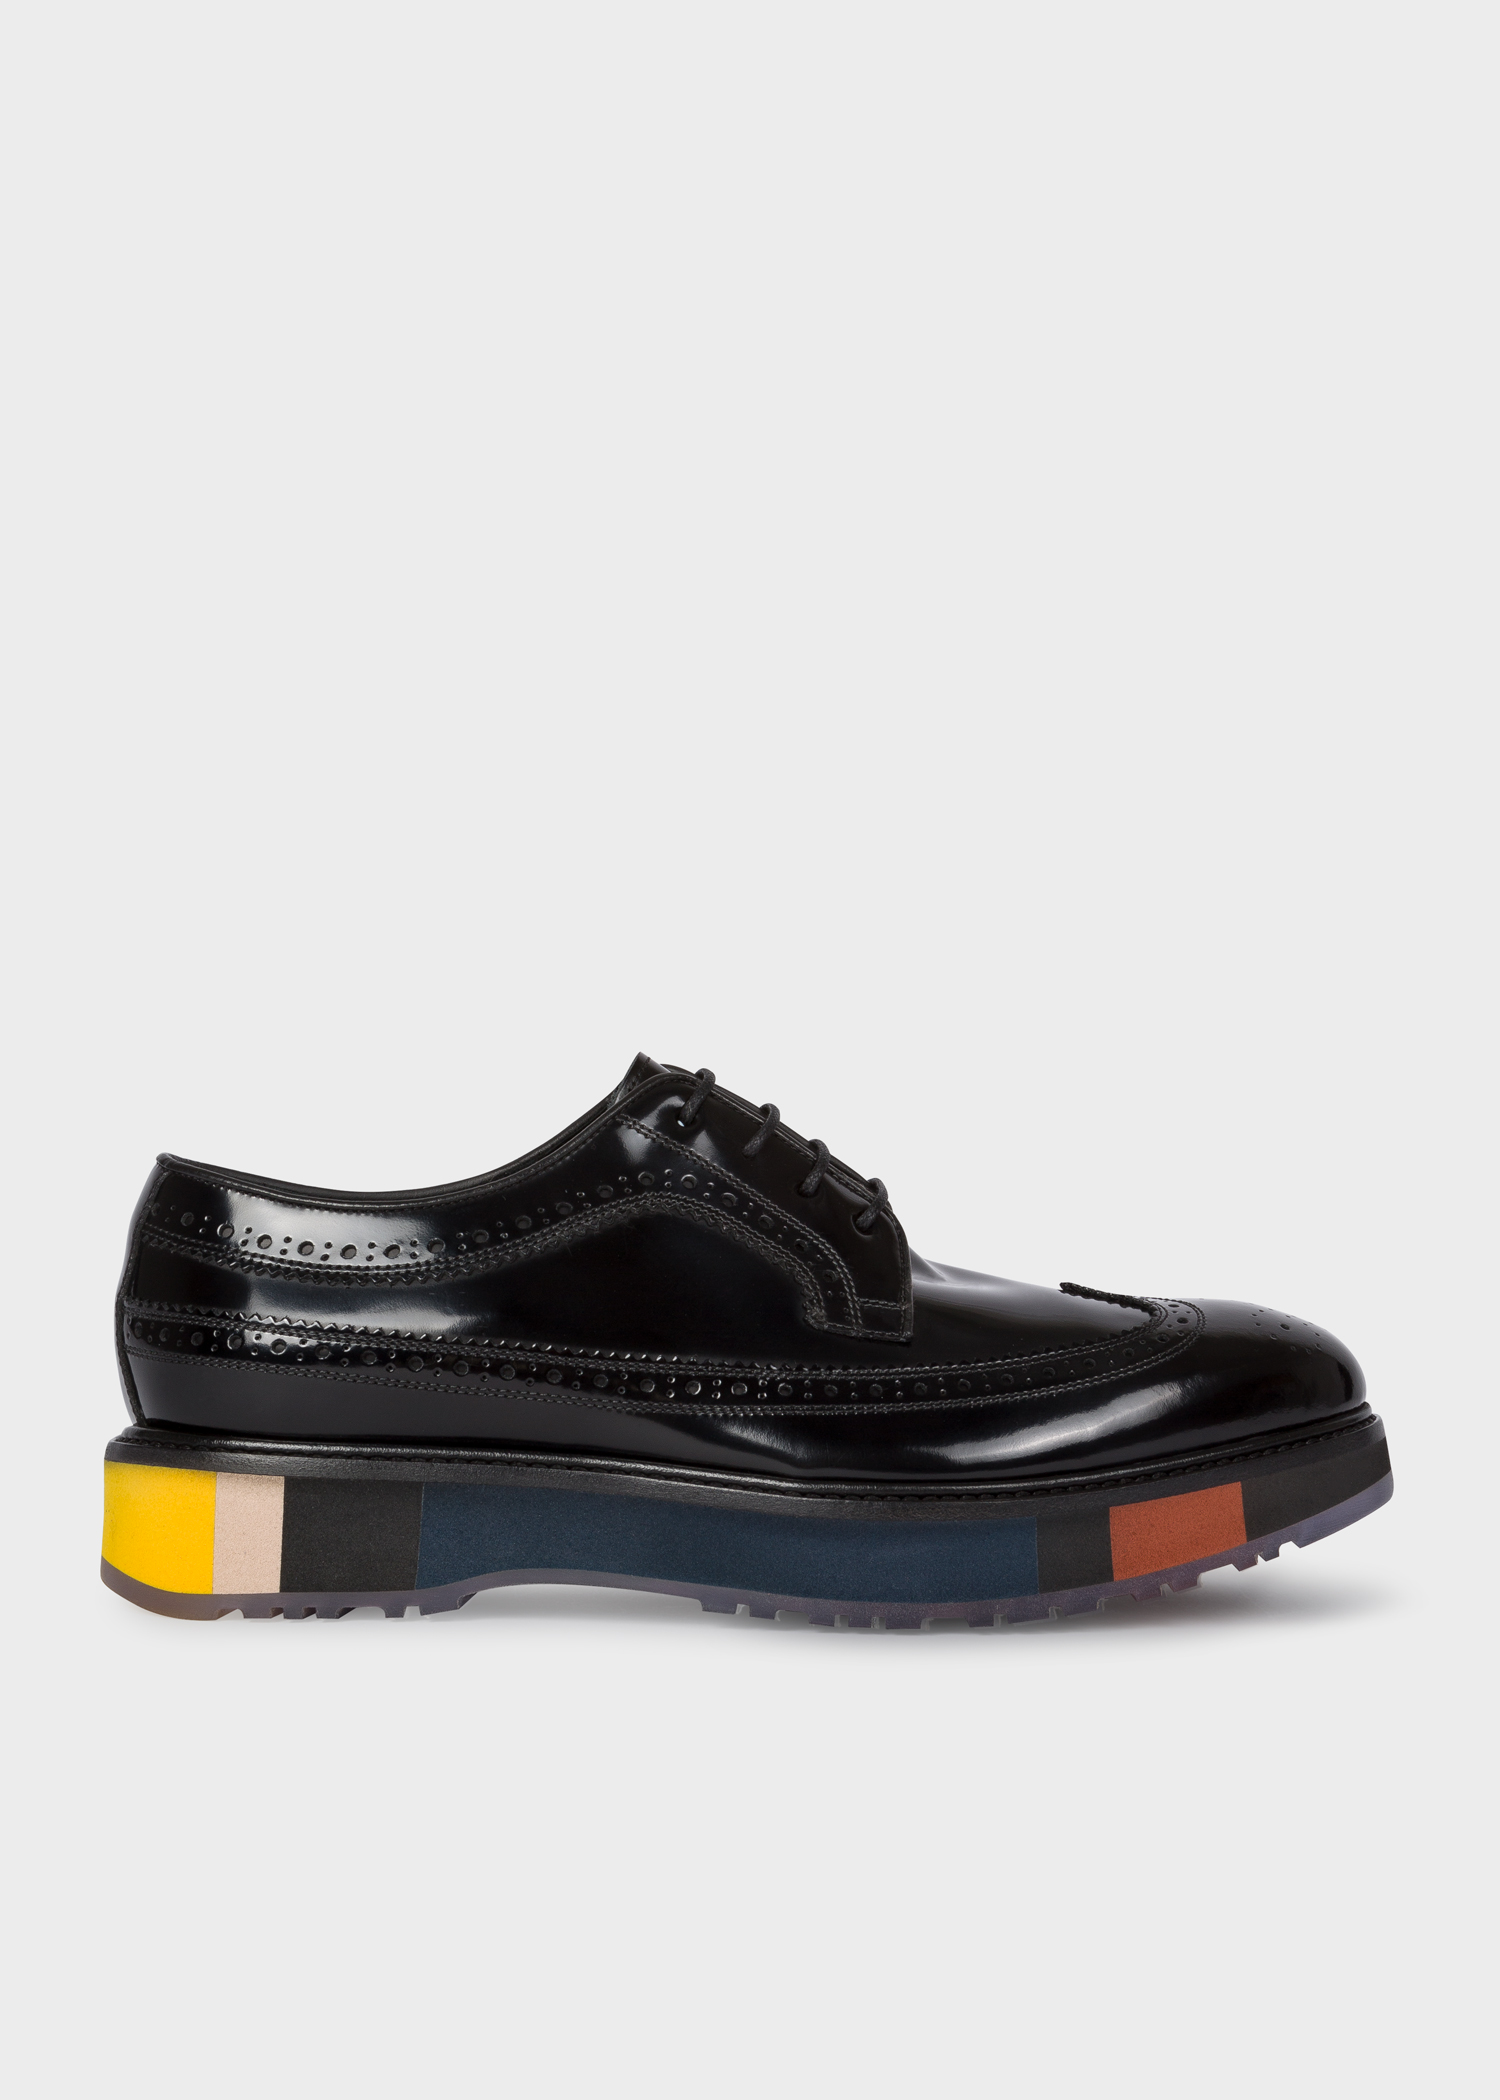 75b6cc7f01 Side view - Men's Black Patent 'Grand' Brogues With Striped Soles Paul Smith